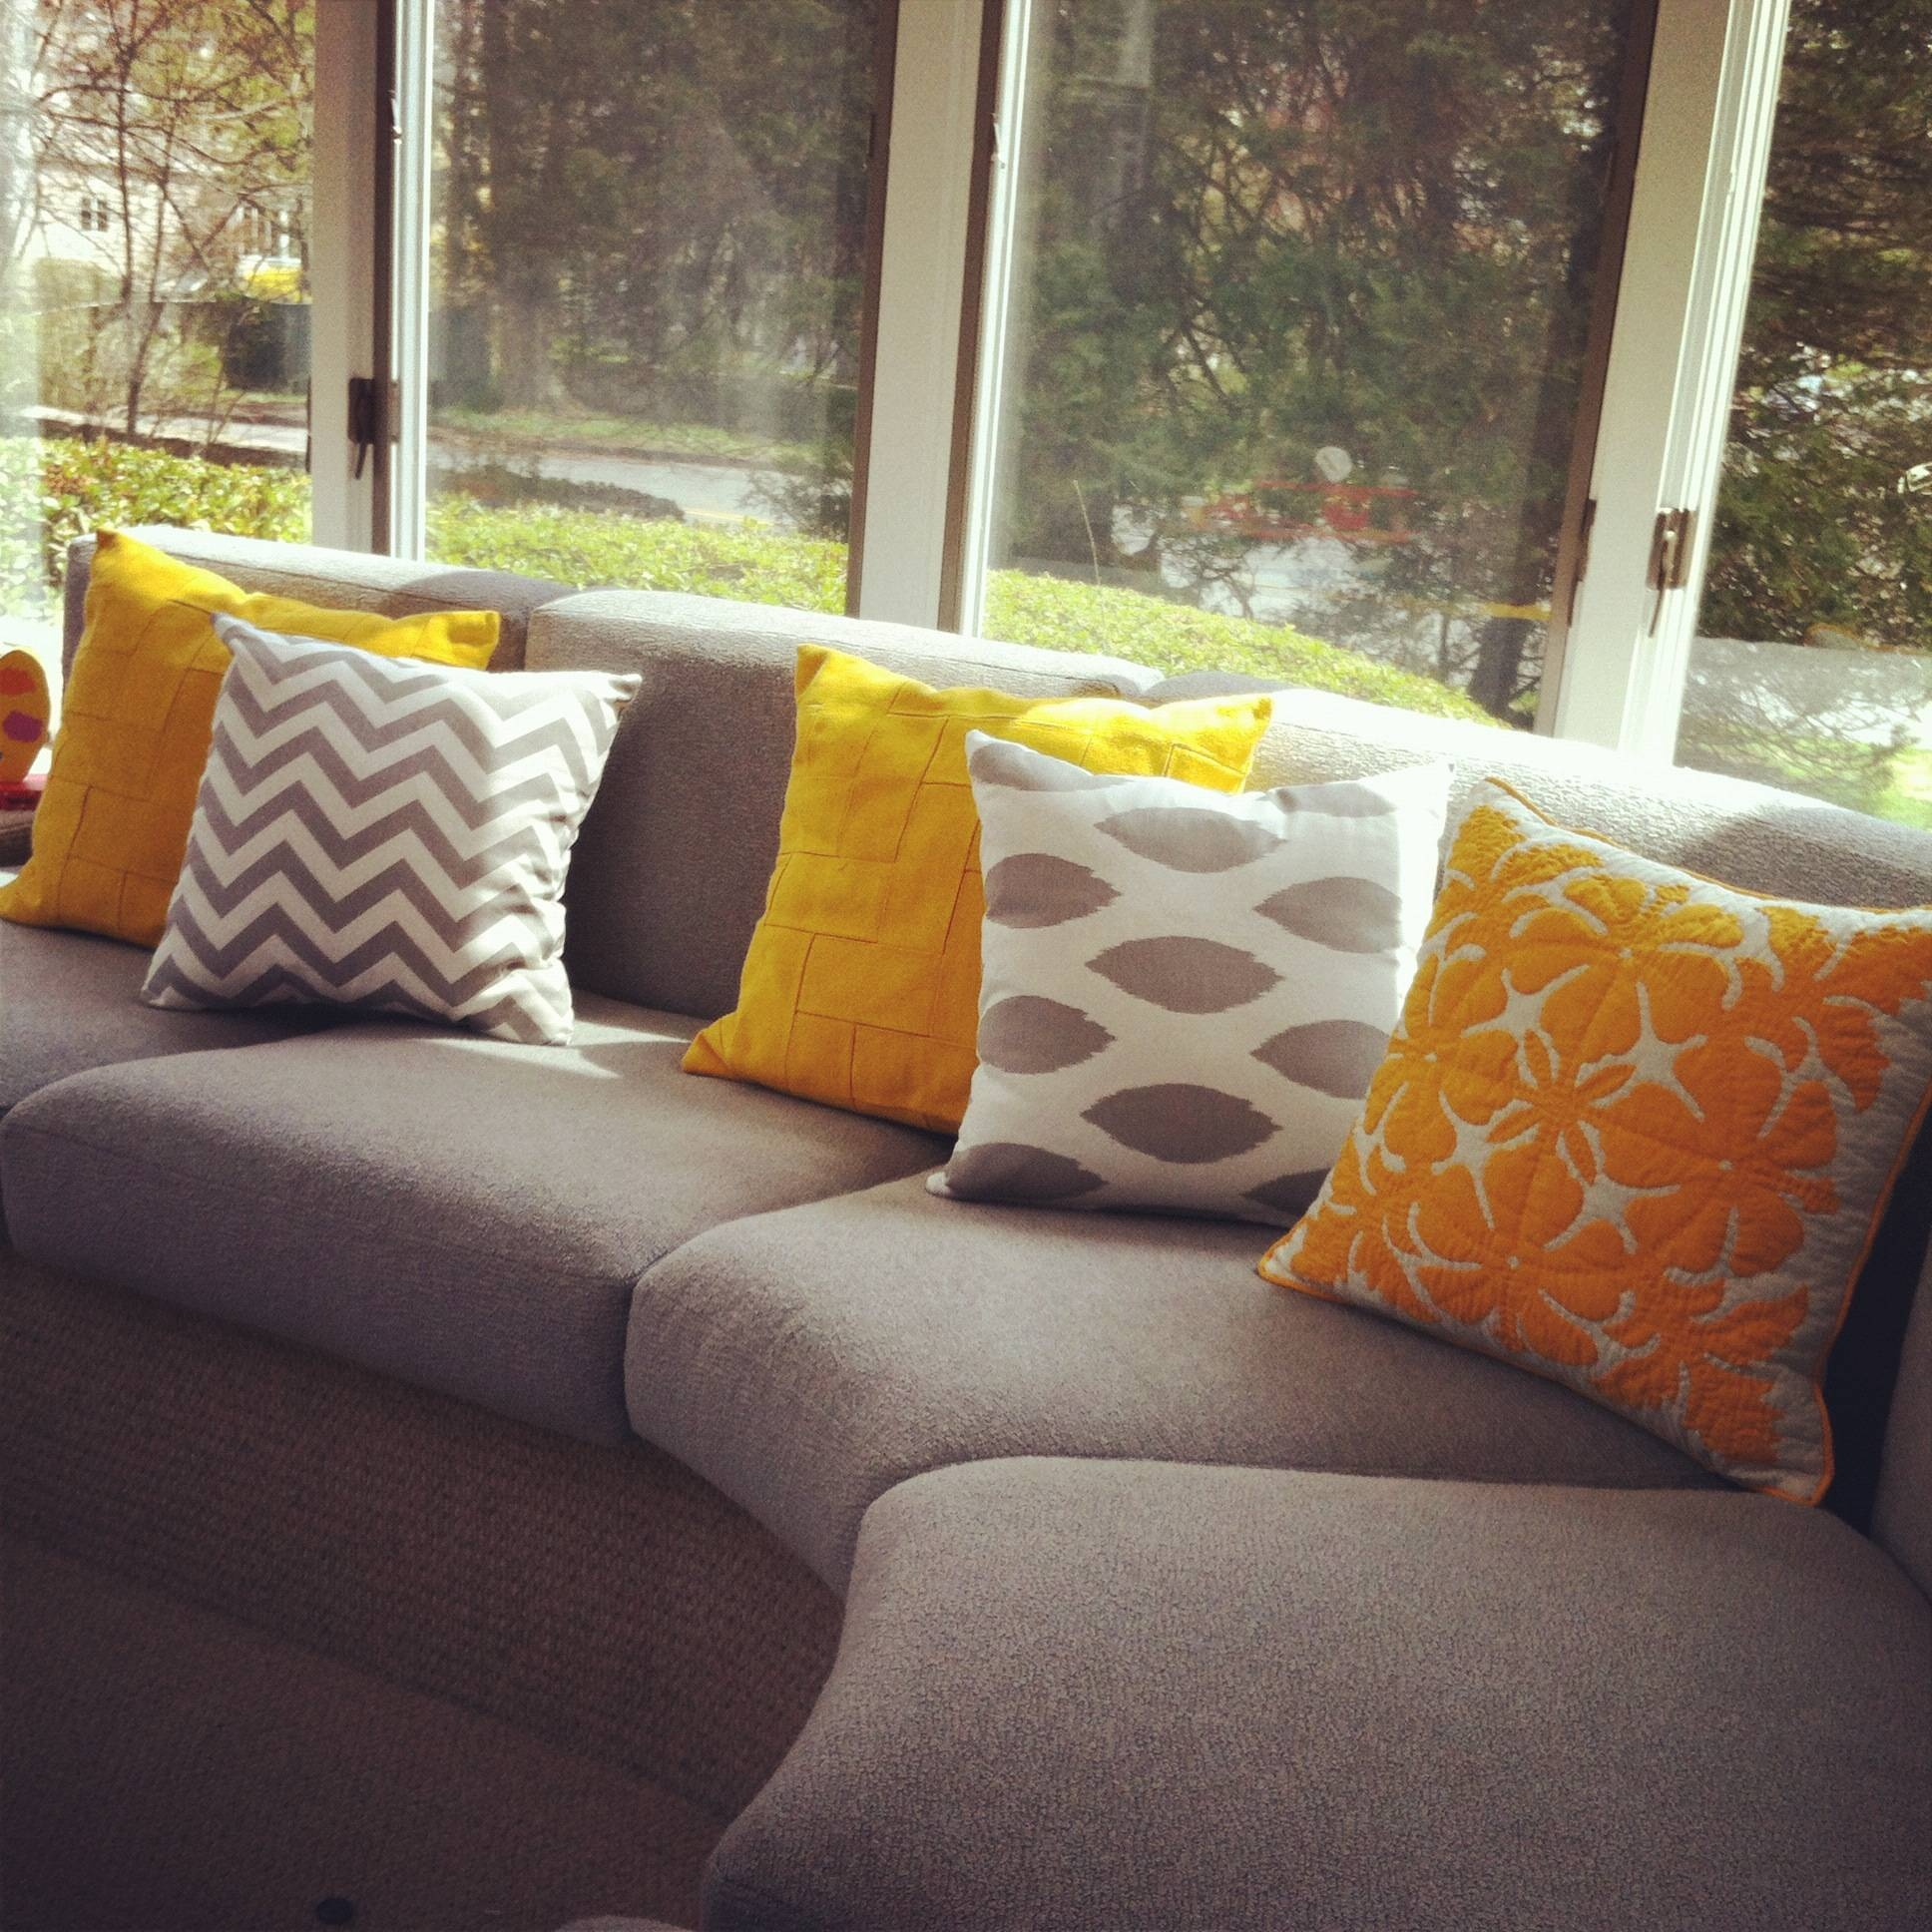 Sectional Sofa Throws - Cleanupflorida throughout Cheap Throws For Sofas (Image 16 of 30)